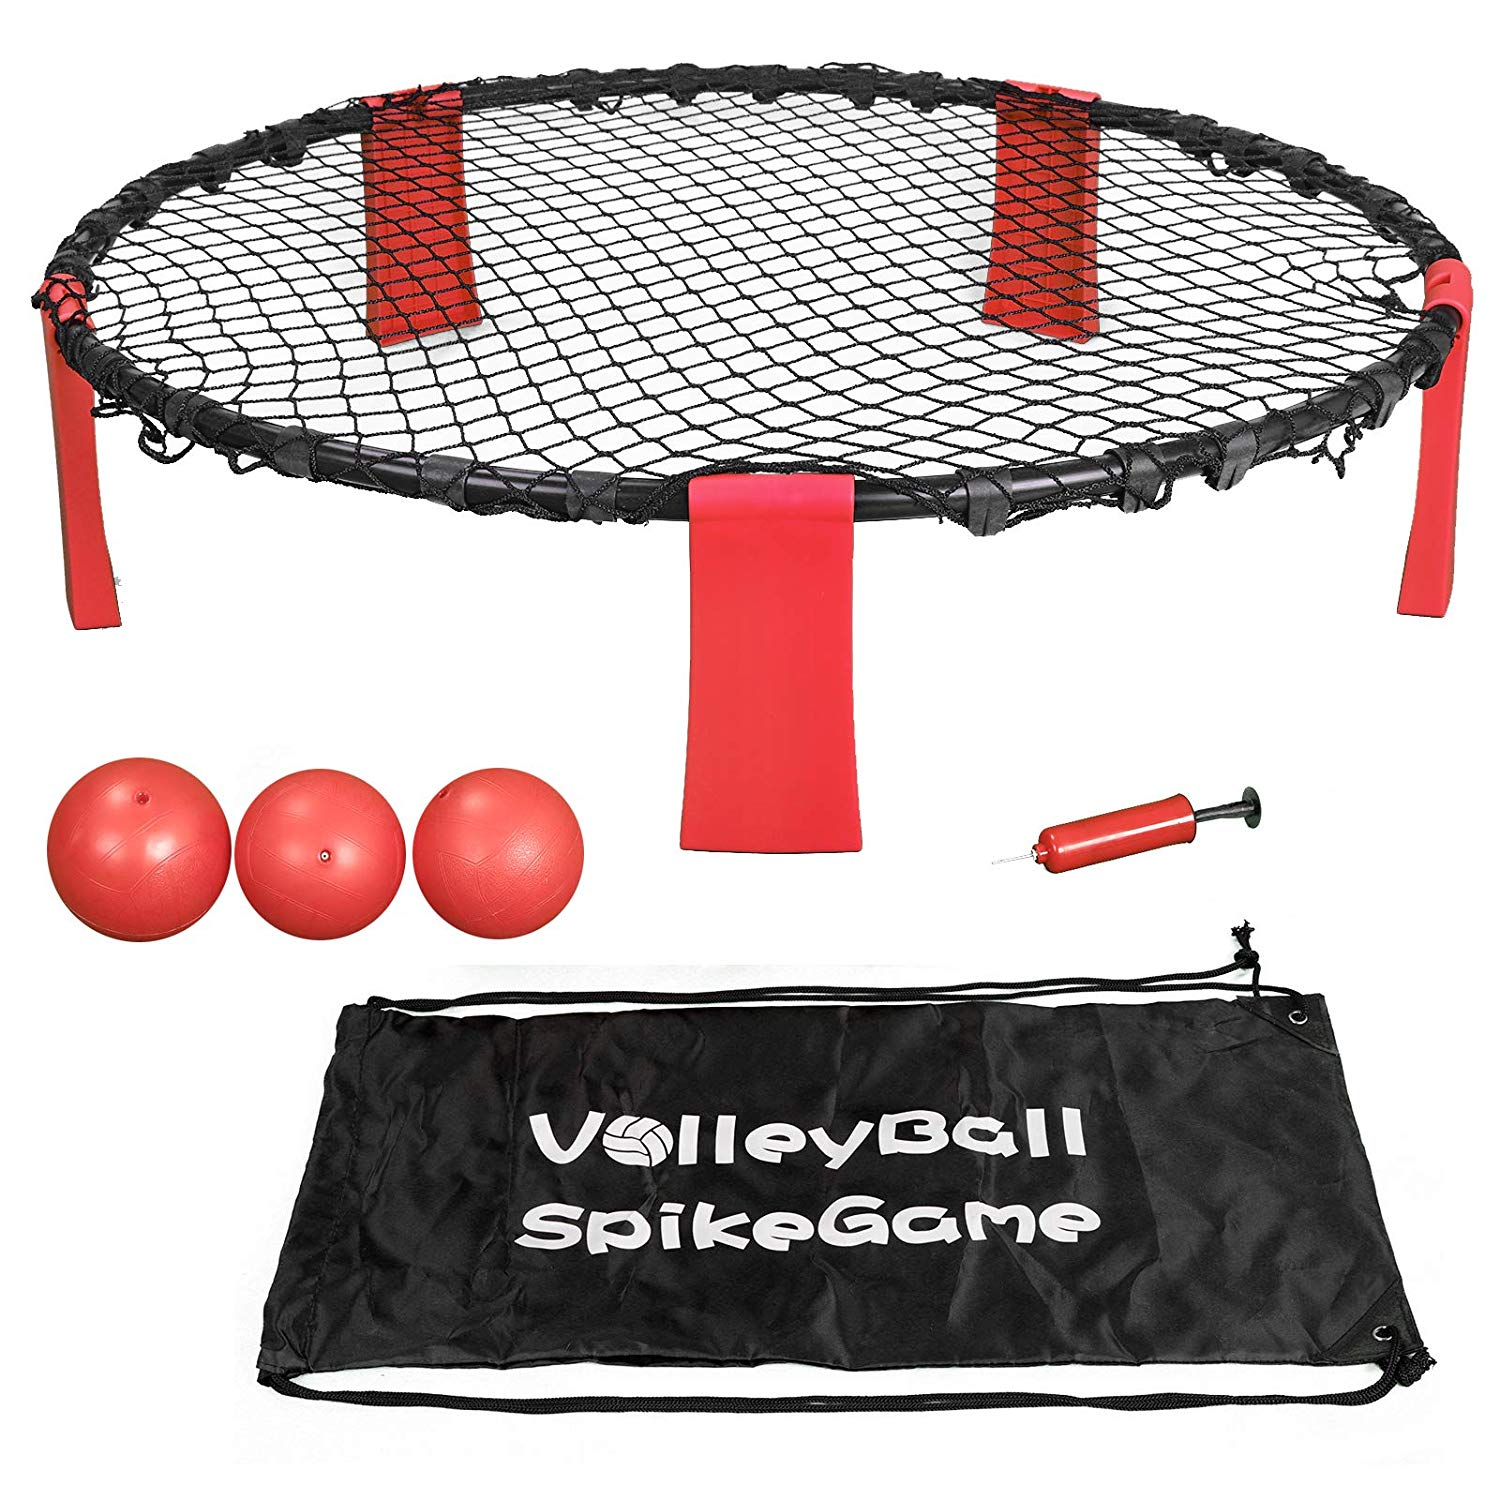 Smartxchoices Ball Spike Toss Game, Volleyball Battle Ball Game Set for Backyard, Party, Beach, Outdoor Lawn, Tailgates - Playing Net, 3 Balls, Drawstring Bag and Manual Included …